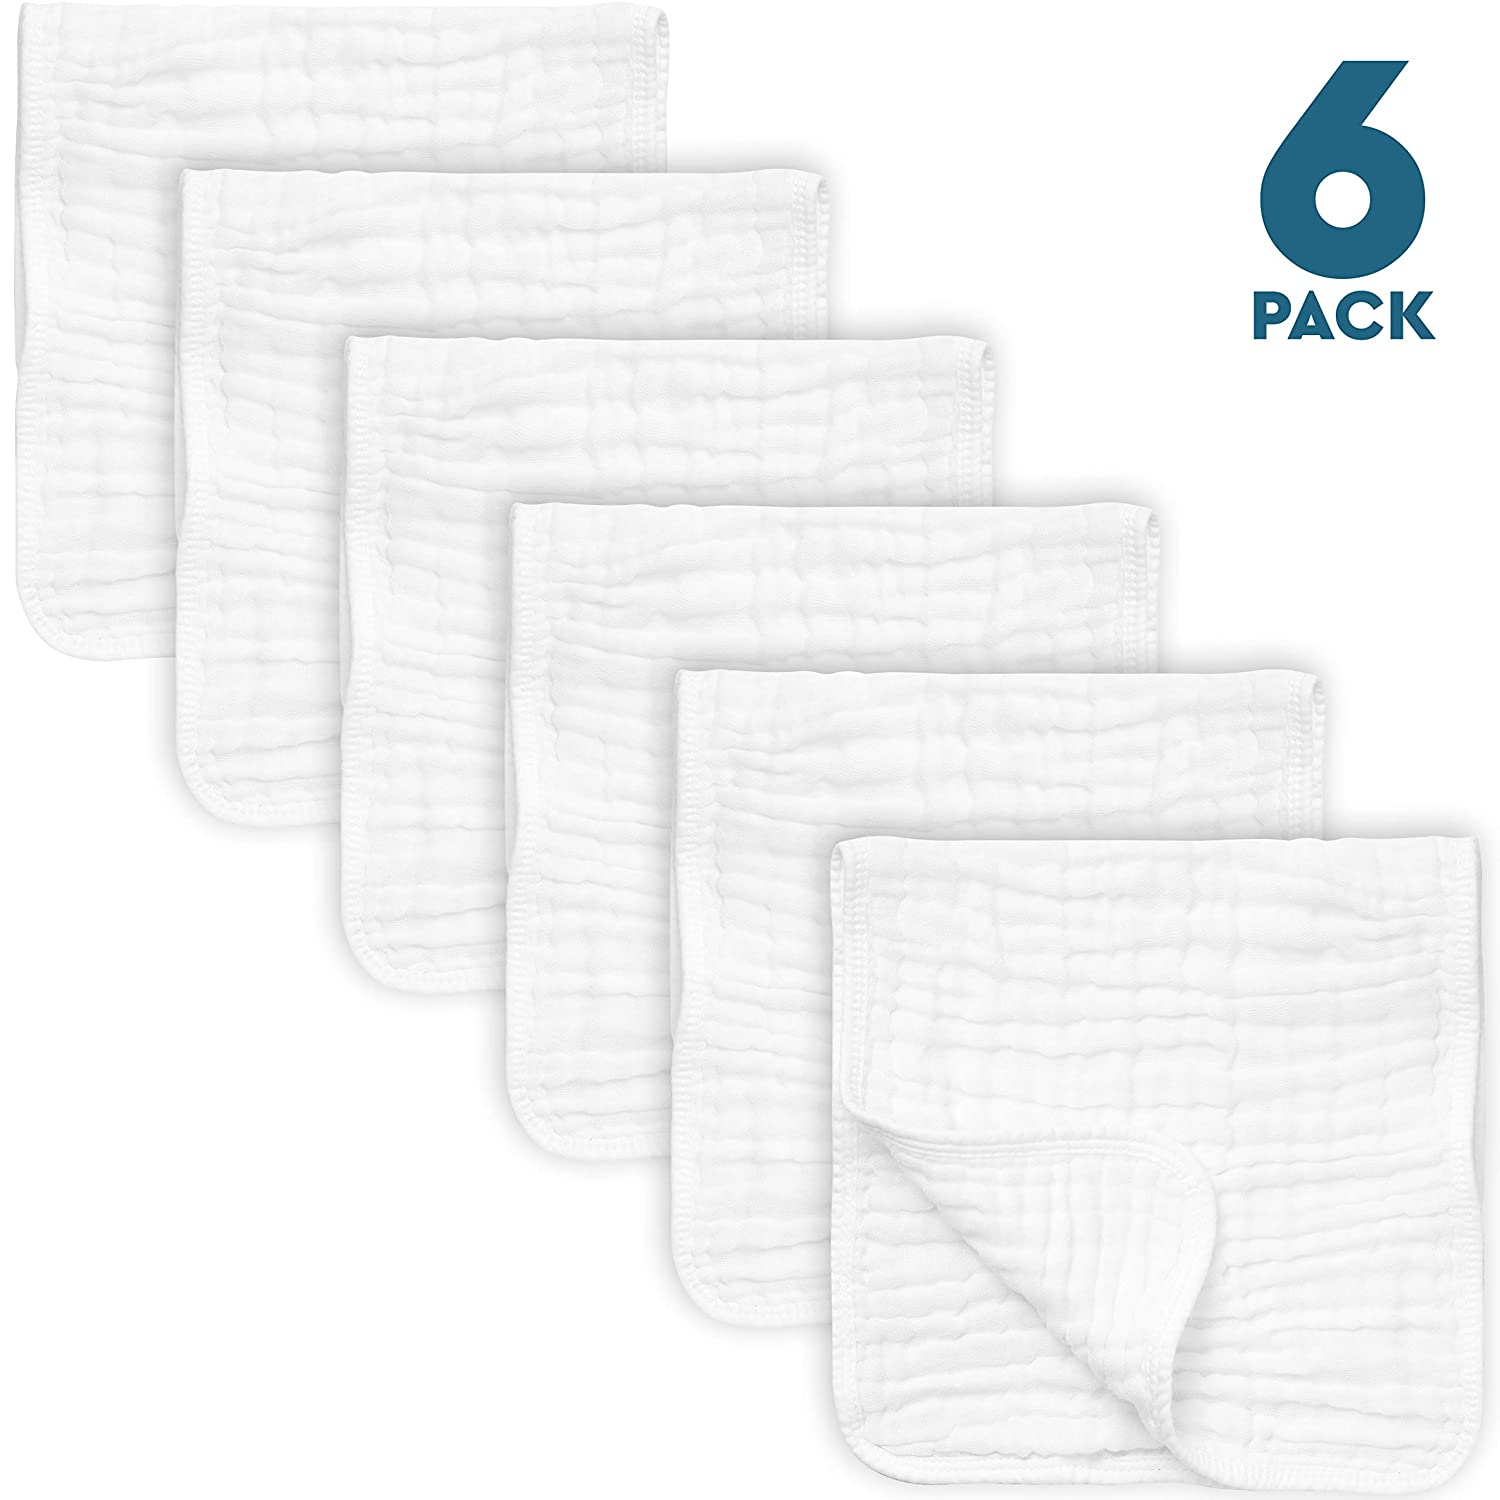 "6 Pack Muslin Burp Cloths Large 20"" by 10"" 100% Cotton, Hand Wash Cloth 6 Layers Extra Absorbent and Soft"